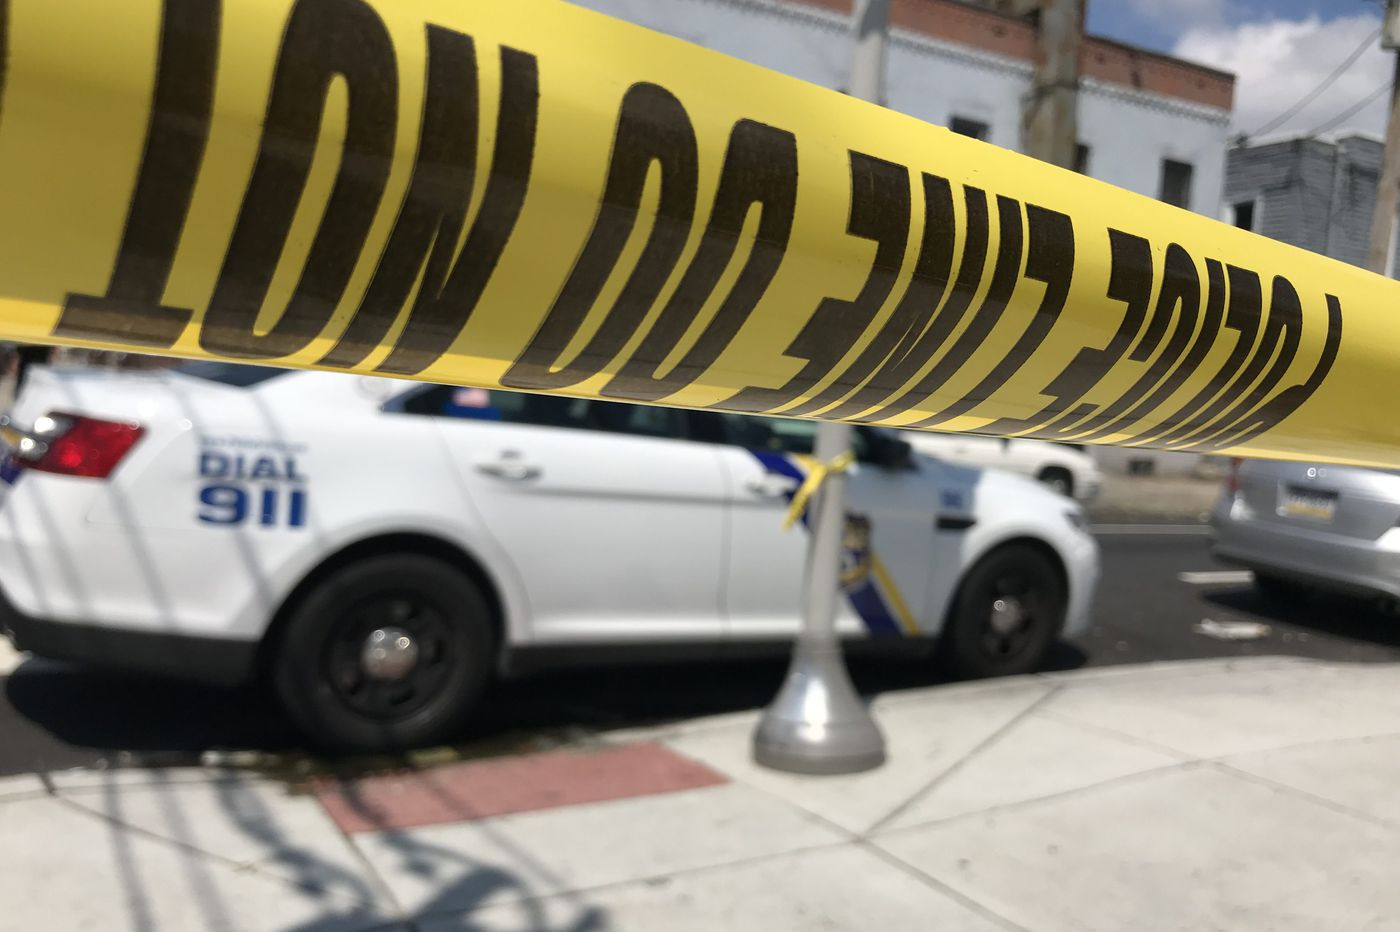 Philadelphia police shoot, kill dog after it attacks girl and responding officer